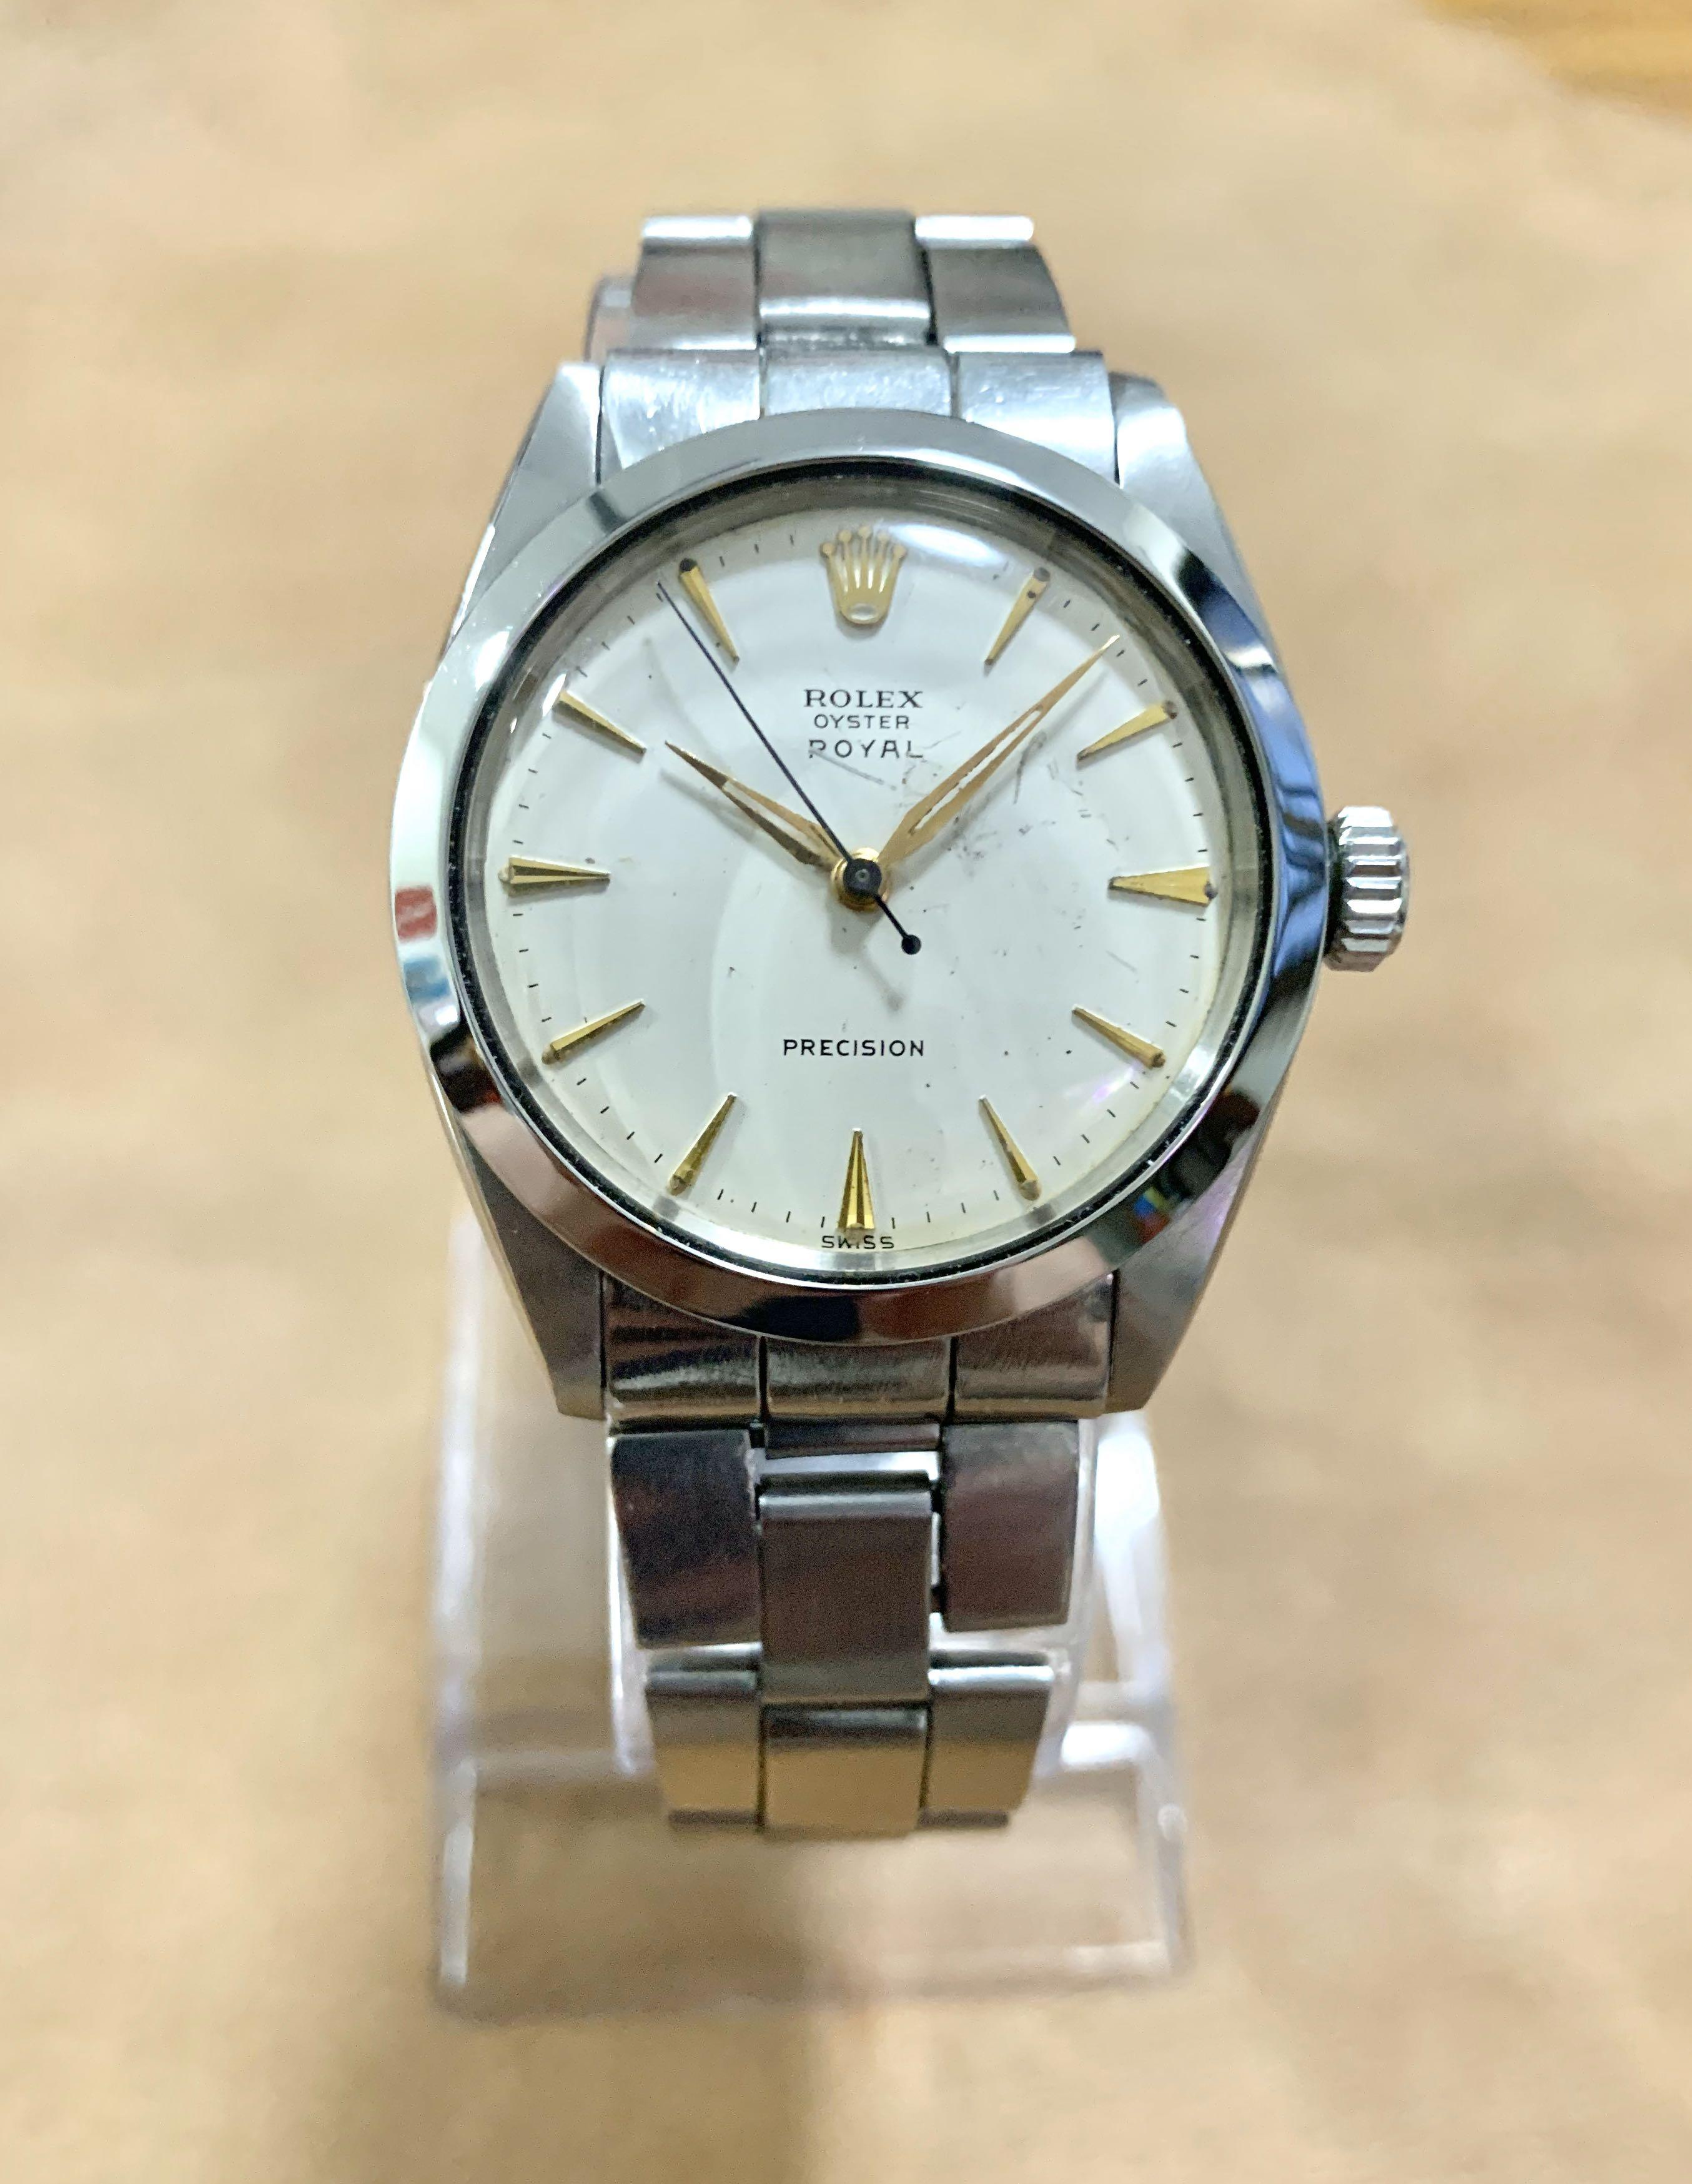 Authentic Very Rare Vintage Rolex 6427 Oyster Royal - 35mm diameter for ladies and men (with leather pouch and cloth) - natural cream off-white patina dial (highly collectible) (41mm lug-to-lug)👍🏻 NEGOTIABLE- make us an offer 👍🏻